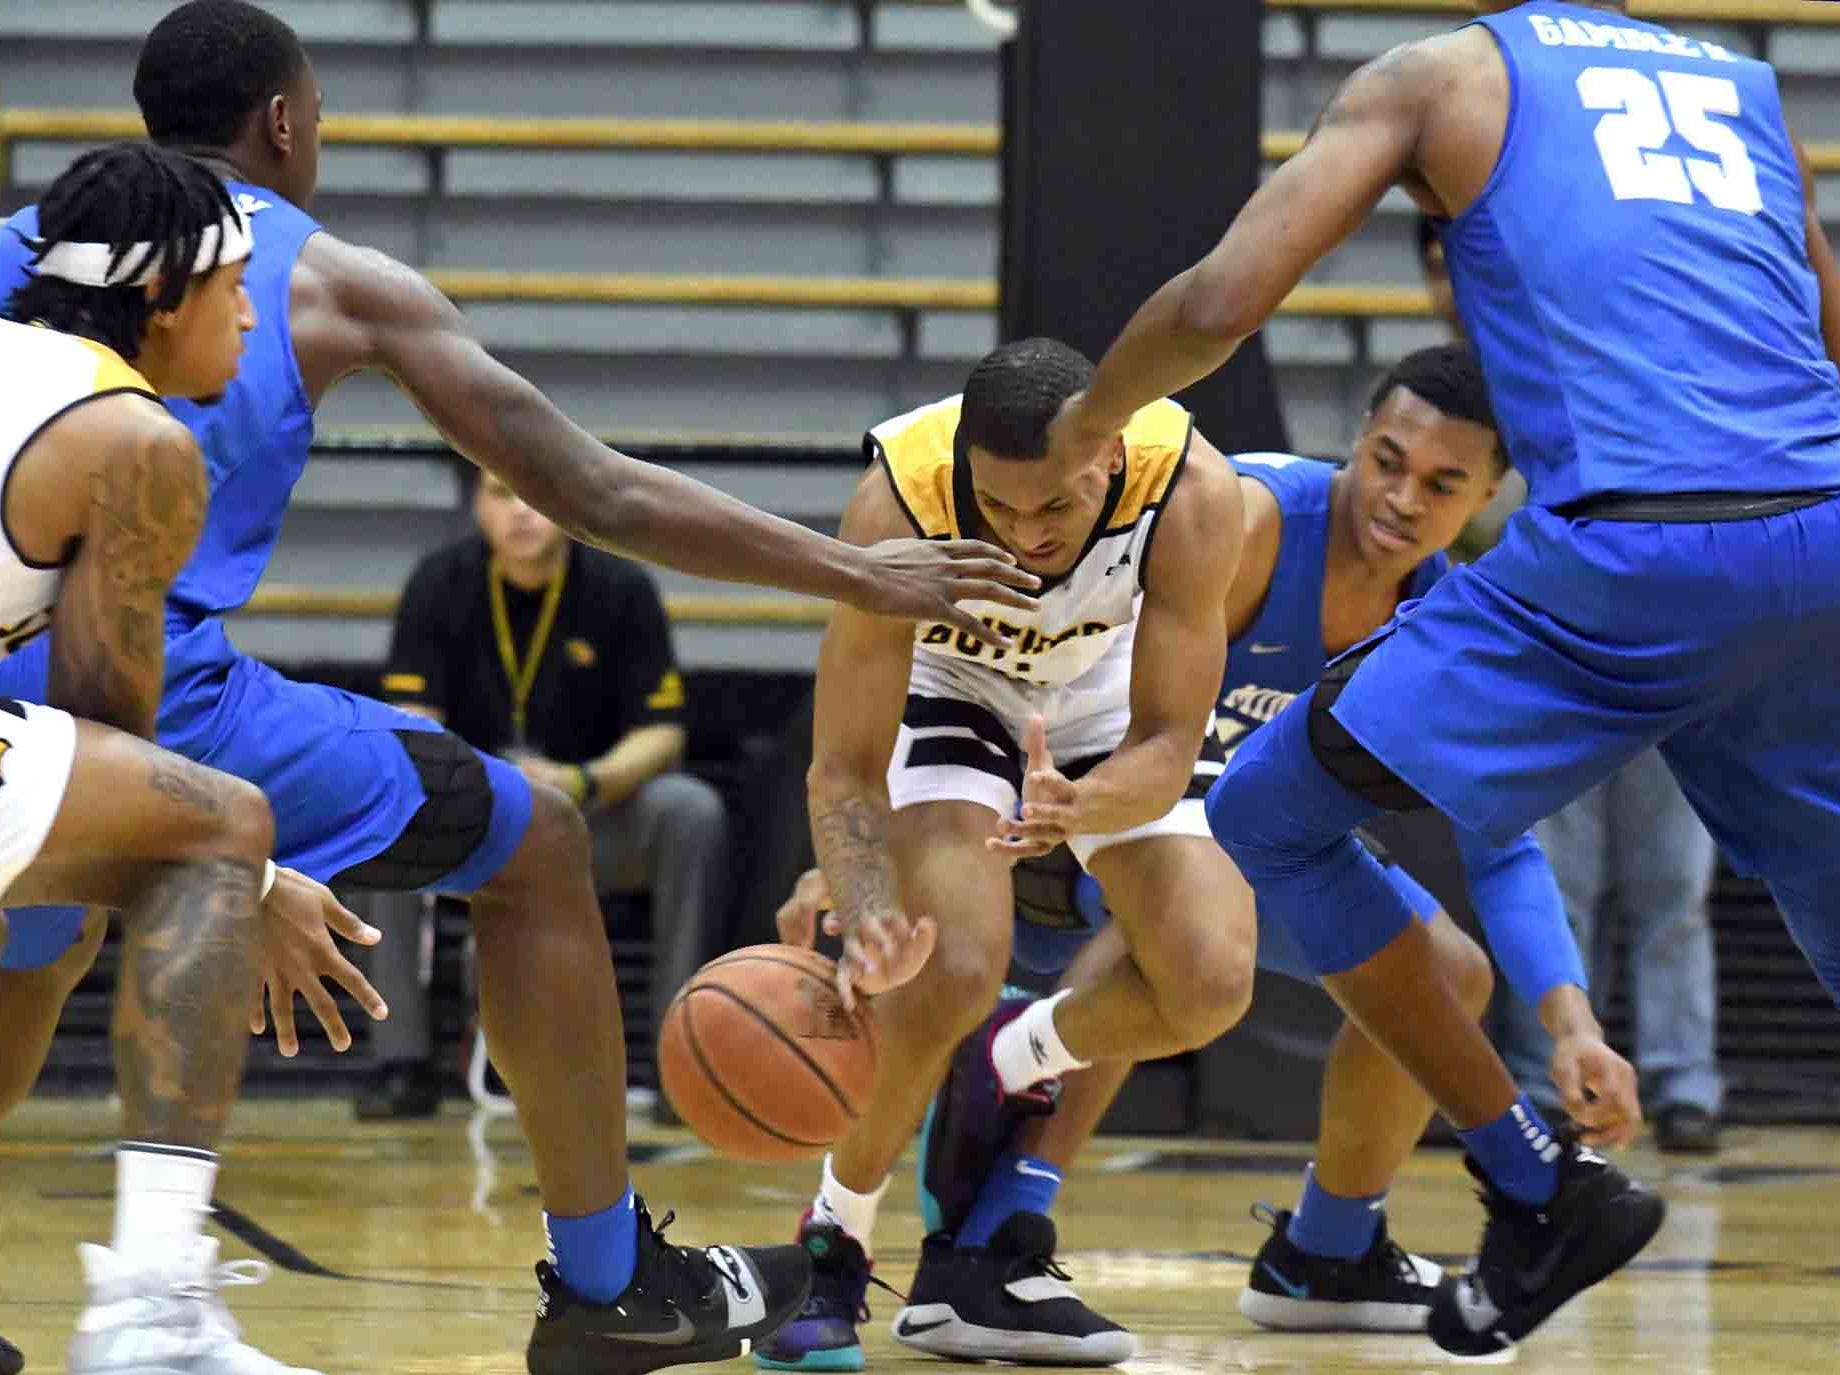 Southern Miss guard Cortez Edwards scrambles for the ball in a game against Middle Tennessee in Reed Green Coliseum on Thursday, January 10, 2019.